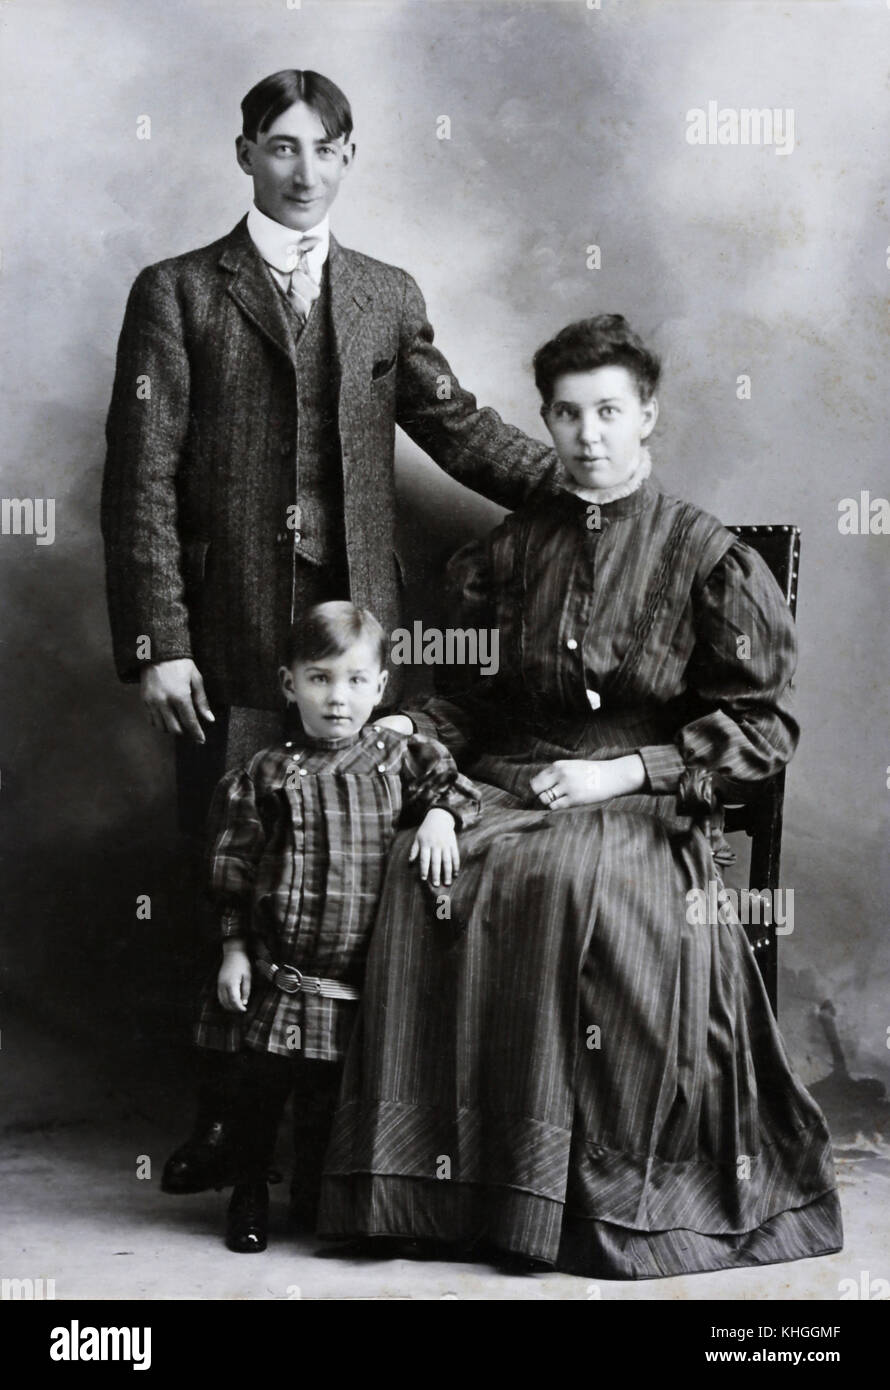 Family snaps over the ages covering 1860's through 1970's.  A collective look at the progression of the - Stock Image